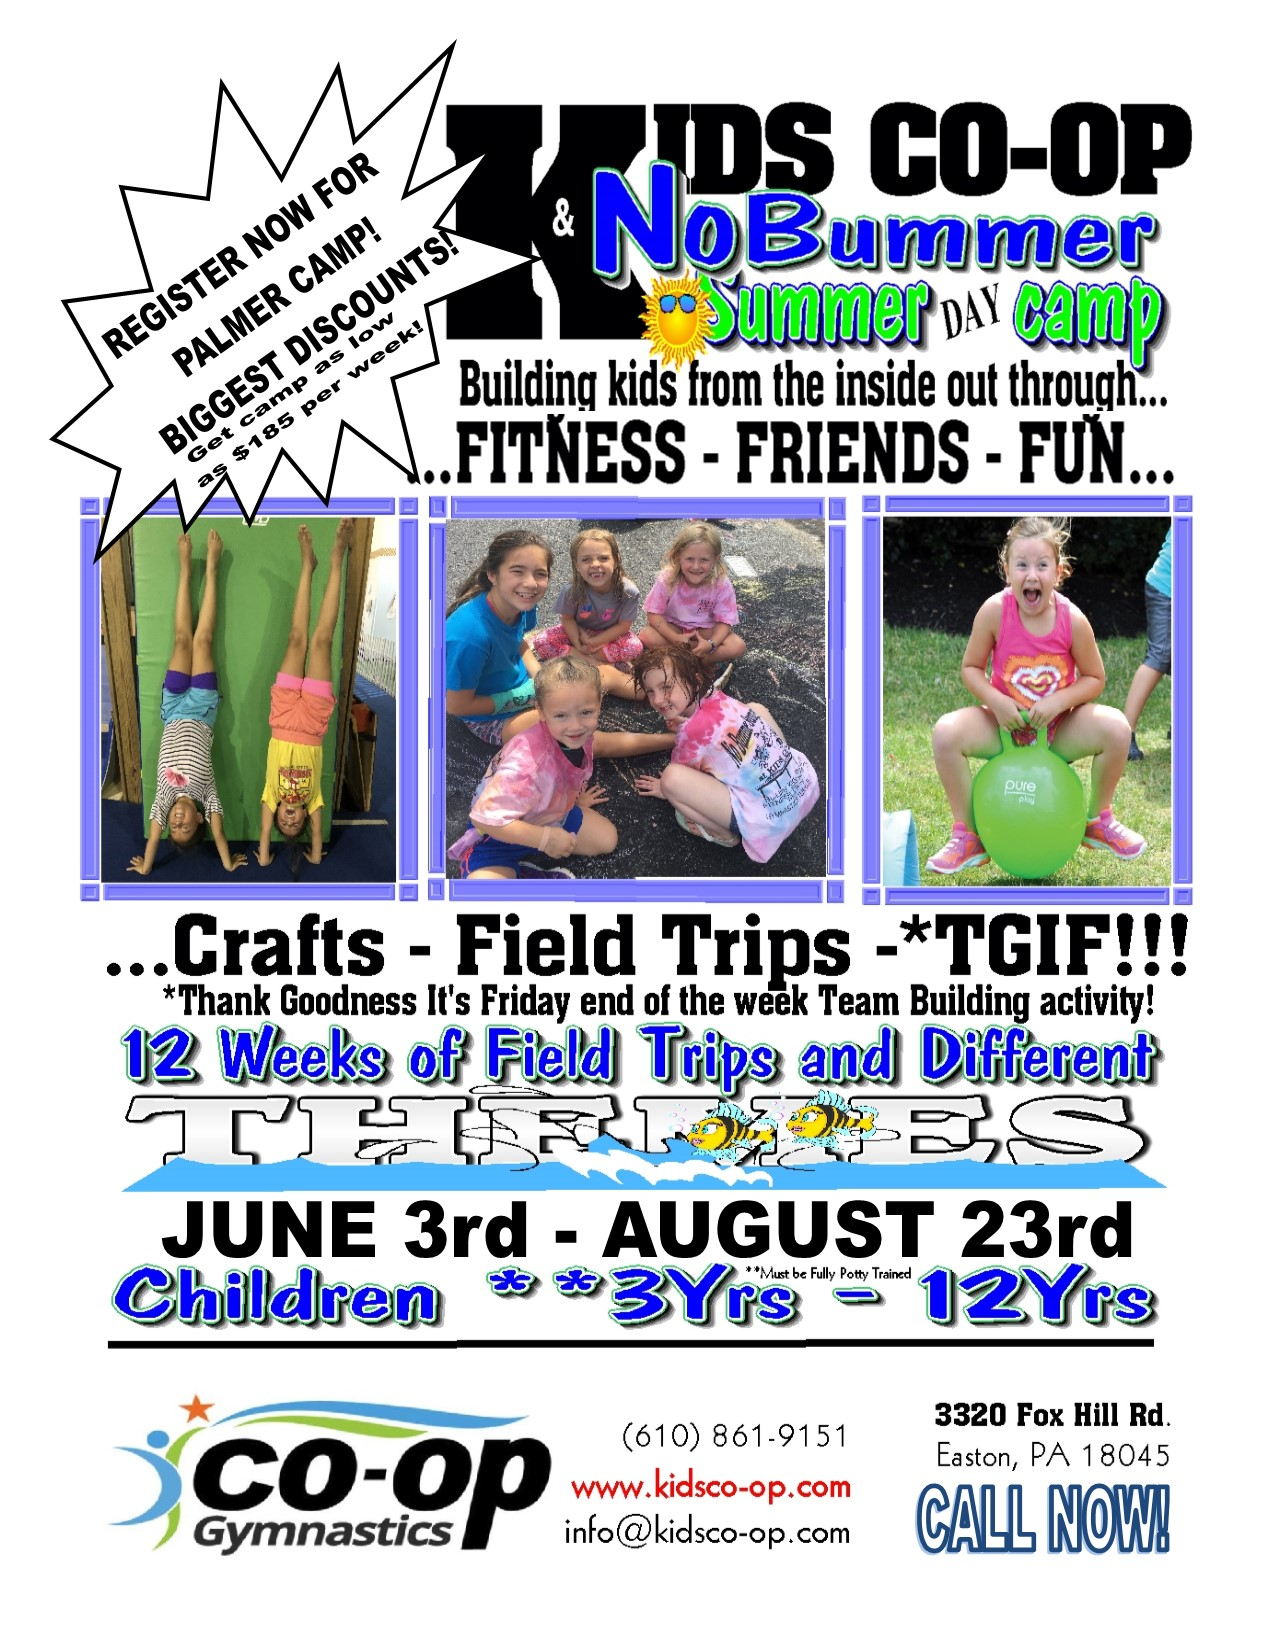 Palmer-Summer-Camp-Flyer-with-Discount-bubble.jpg